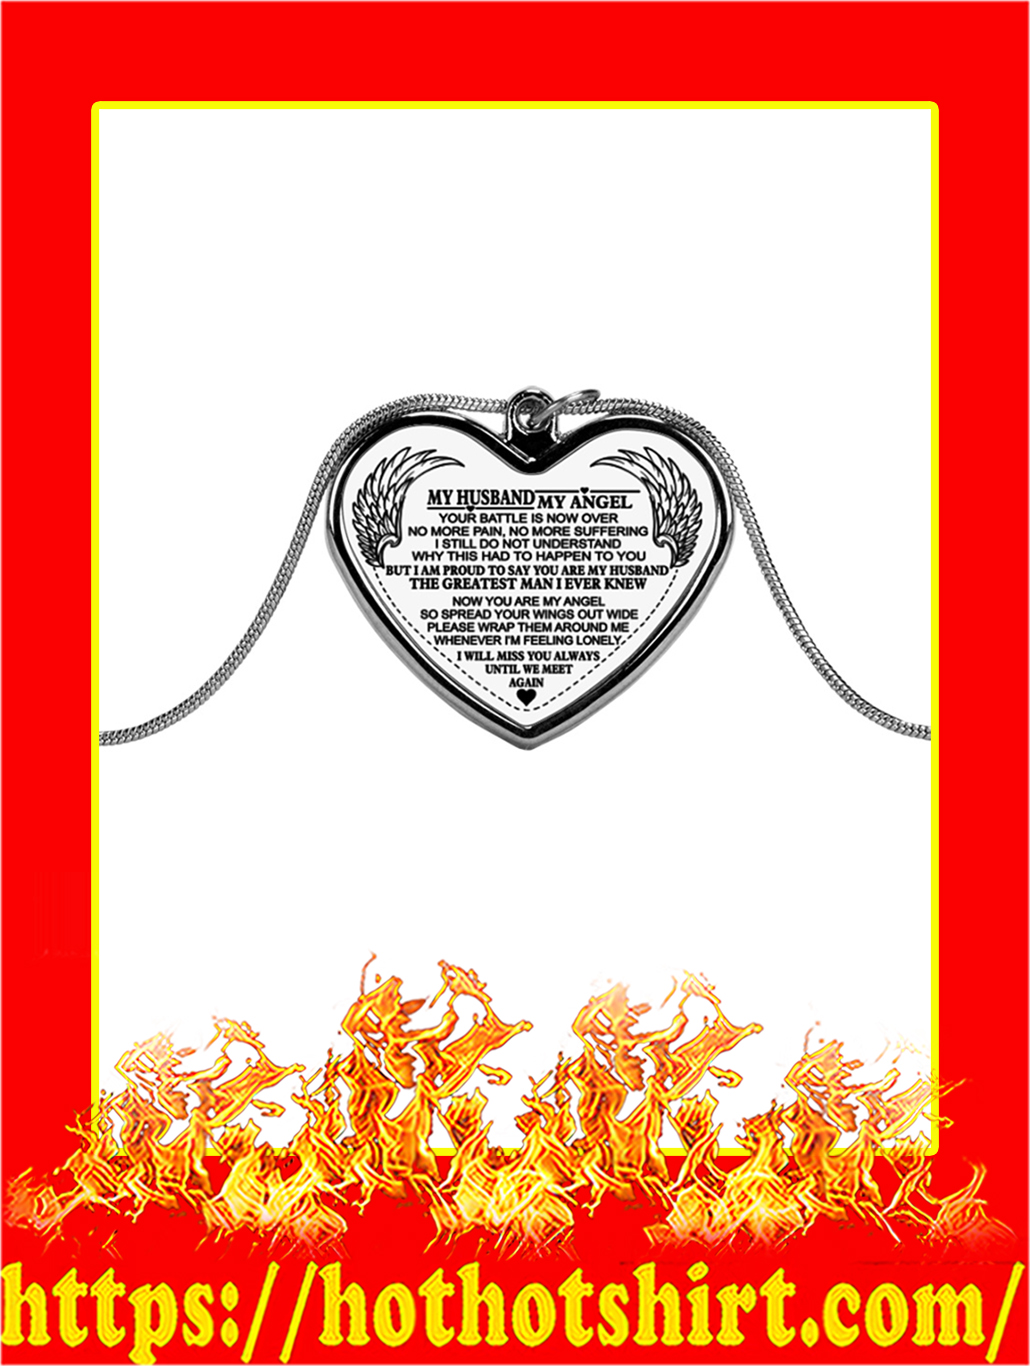 My Husband My Angel Your Battle Is Now Over Necklace- silver